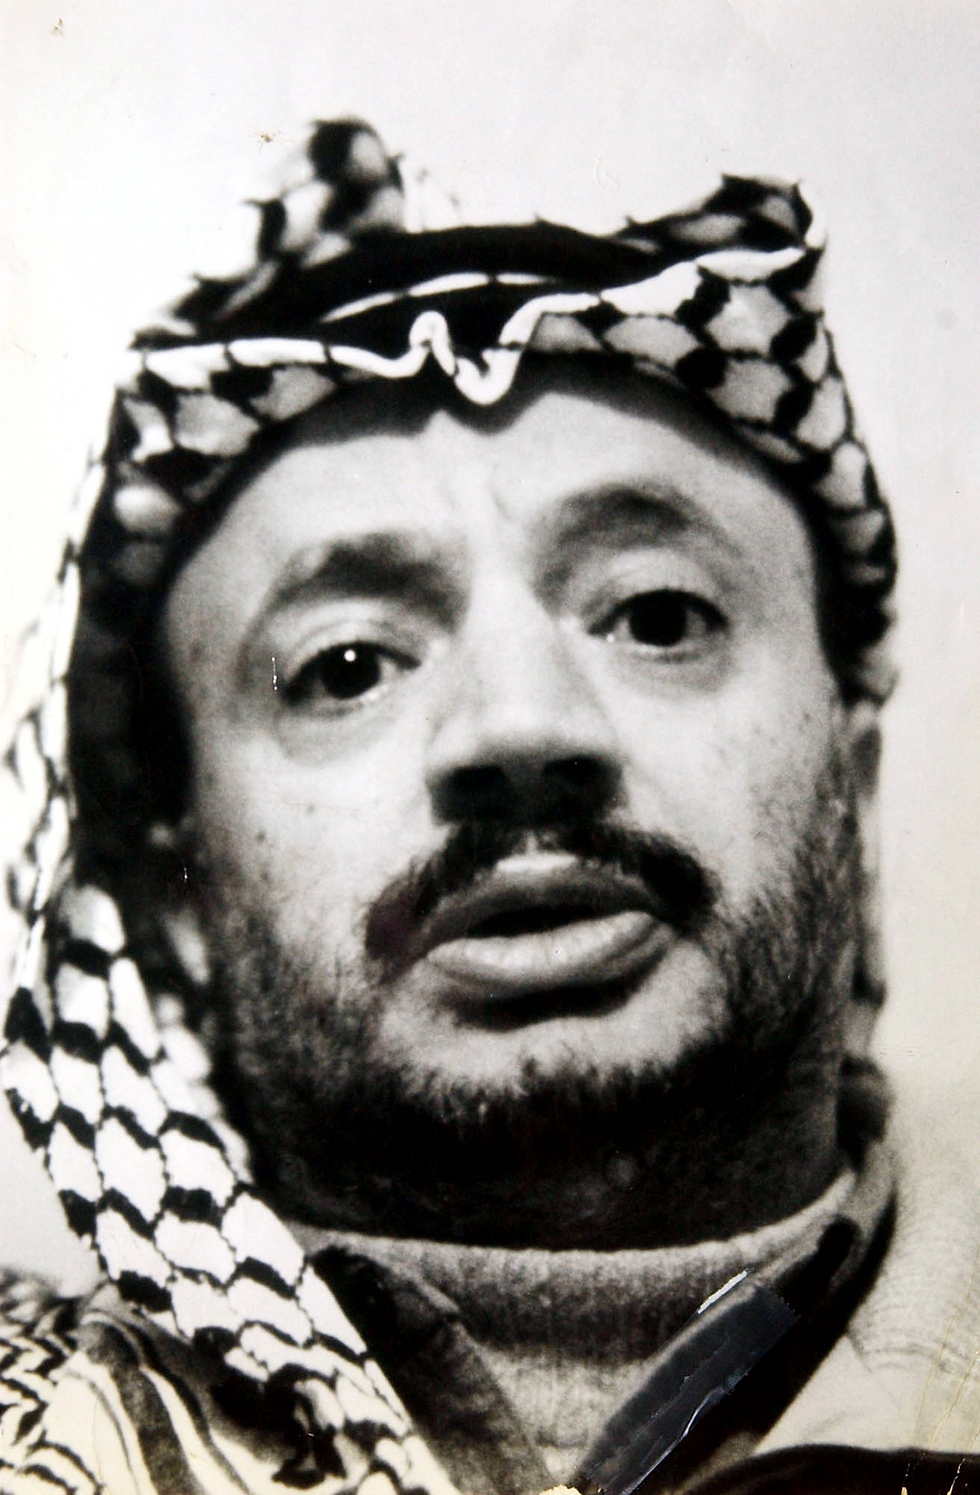 Yasser Arafat (Photo: Camera Press)